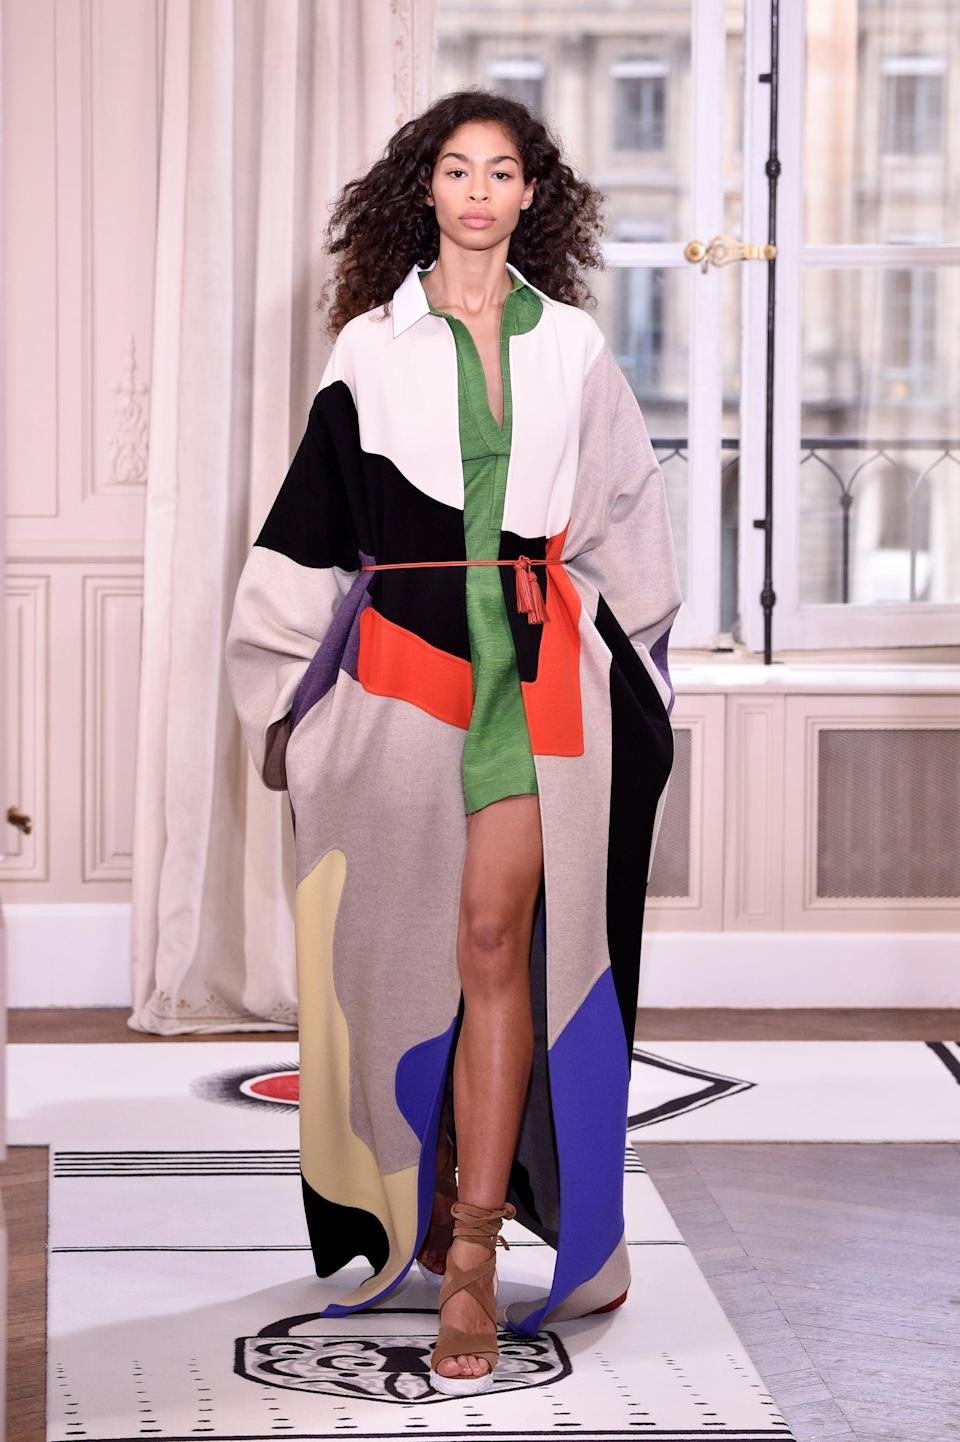 <p>Scouted when she was barely 13 years old, Miu Miu muse Zoe Thaets opened her first show for Schiaparelli in January of 2018. She has been seen across many catwalks since then, including Dior, Marc Jacobs, and Michael Kors.</p>